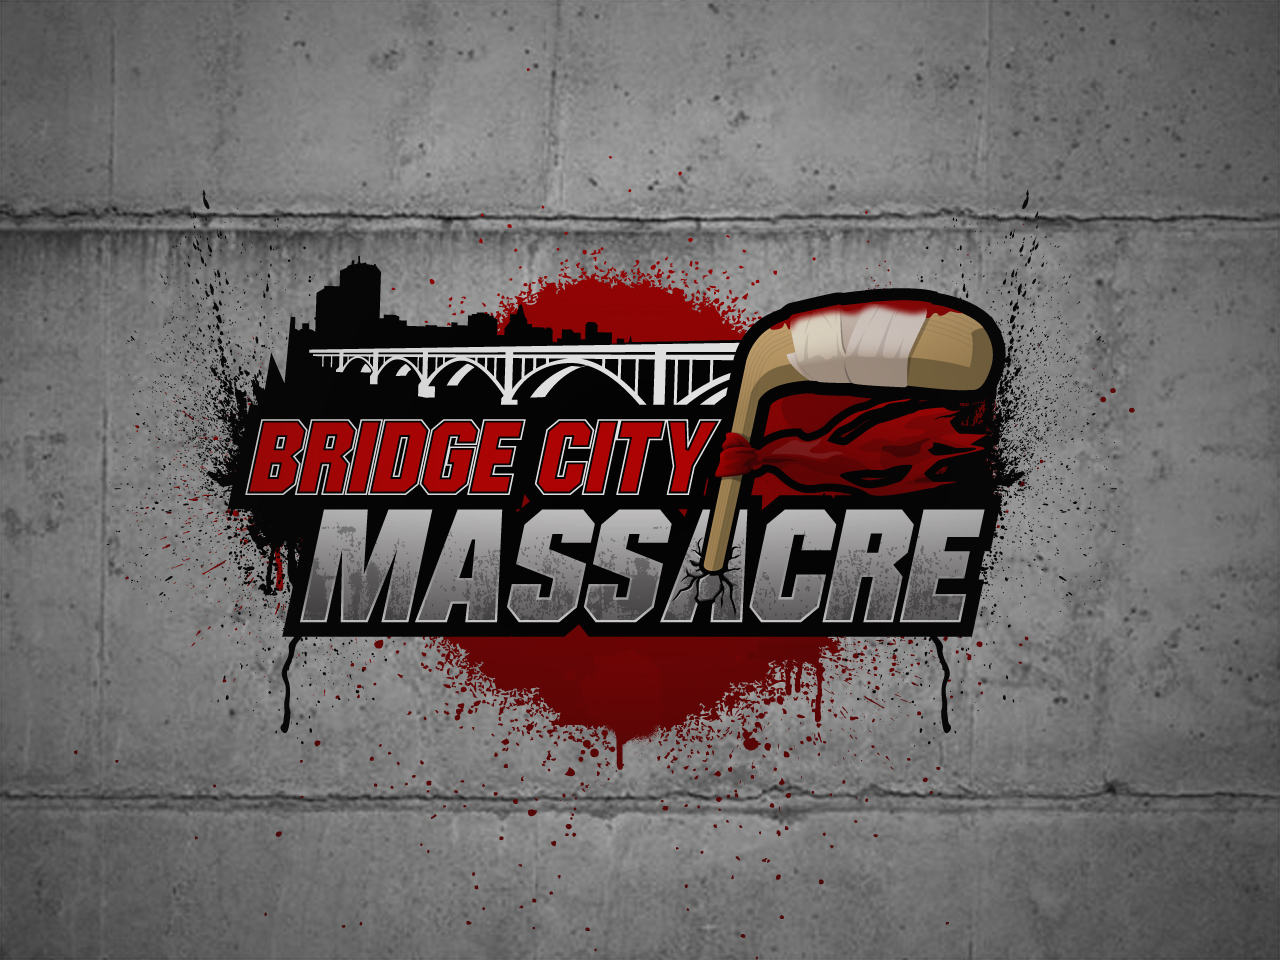 Logo Design by jpbituin - Entry No. 58 in the Logo Design Contest New Logo Design for Bridge City Massacre.